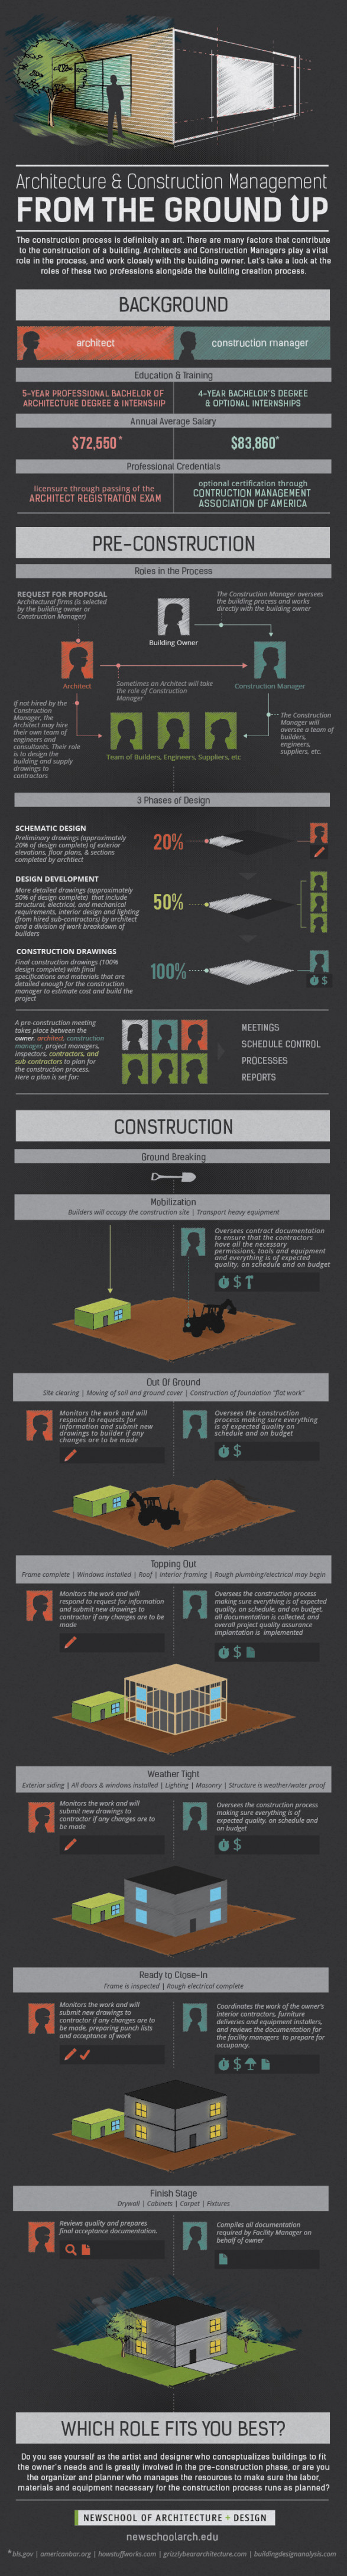 Architecture and Construction Management from the Ground Up